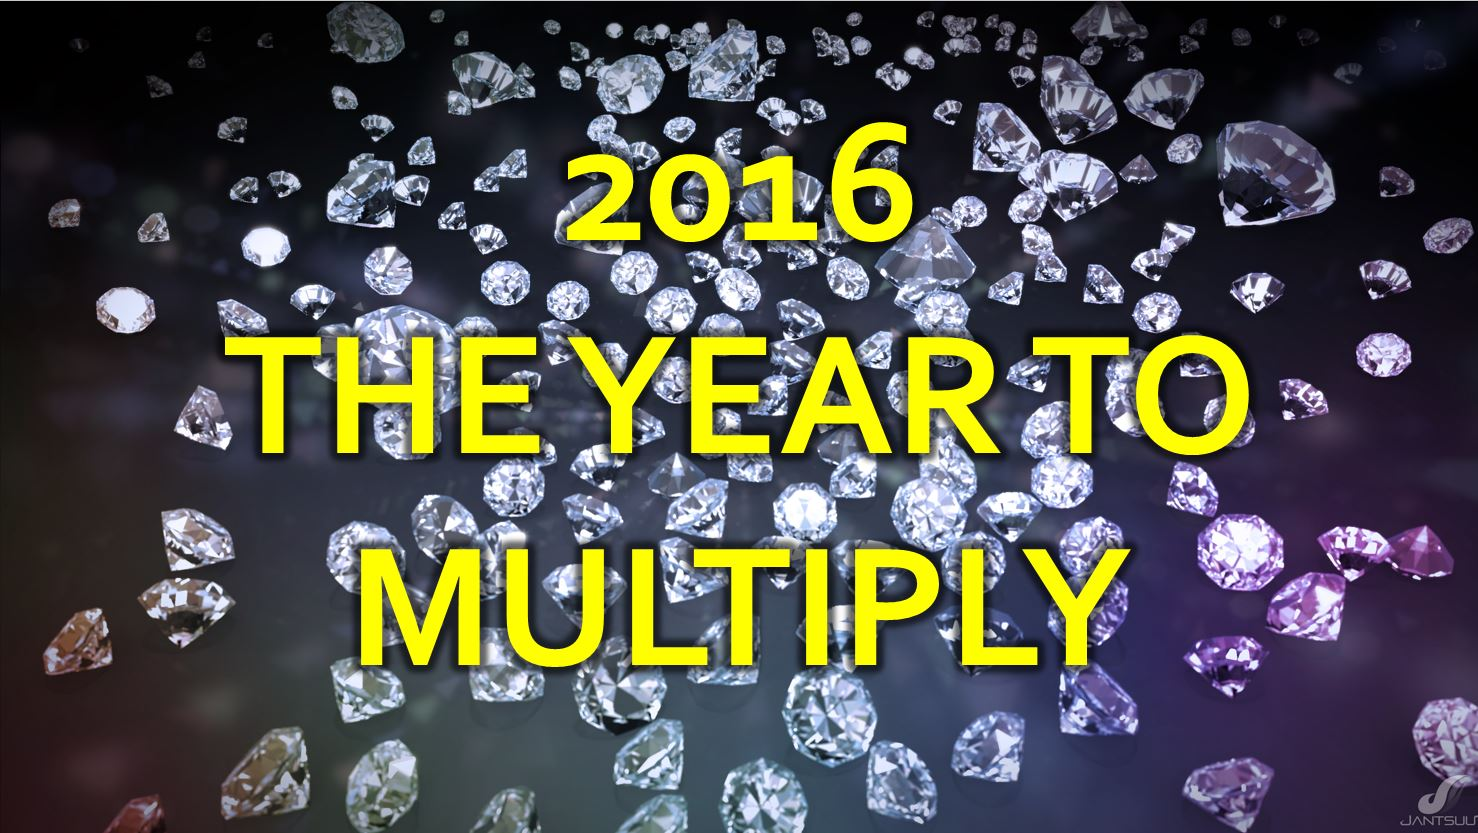 2016 – The Year To Multiply